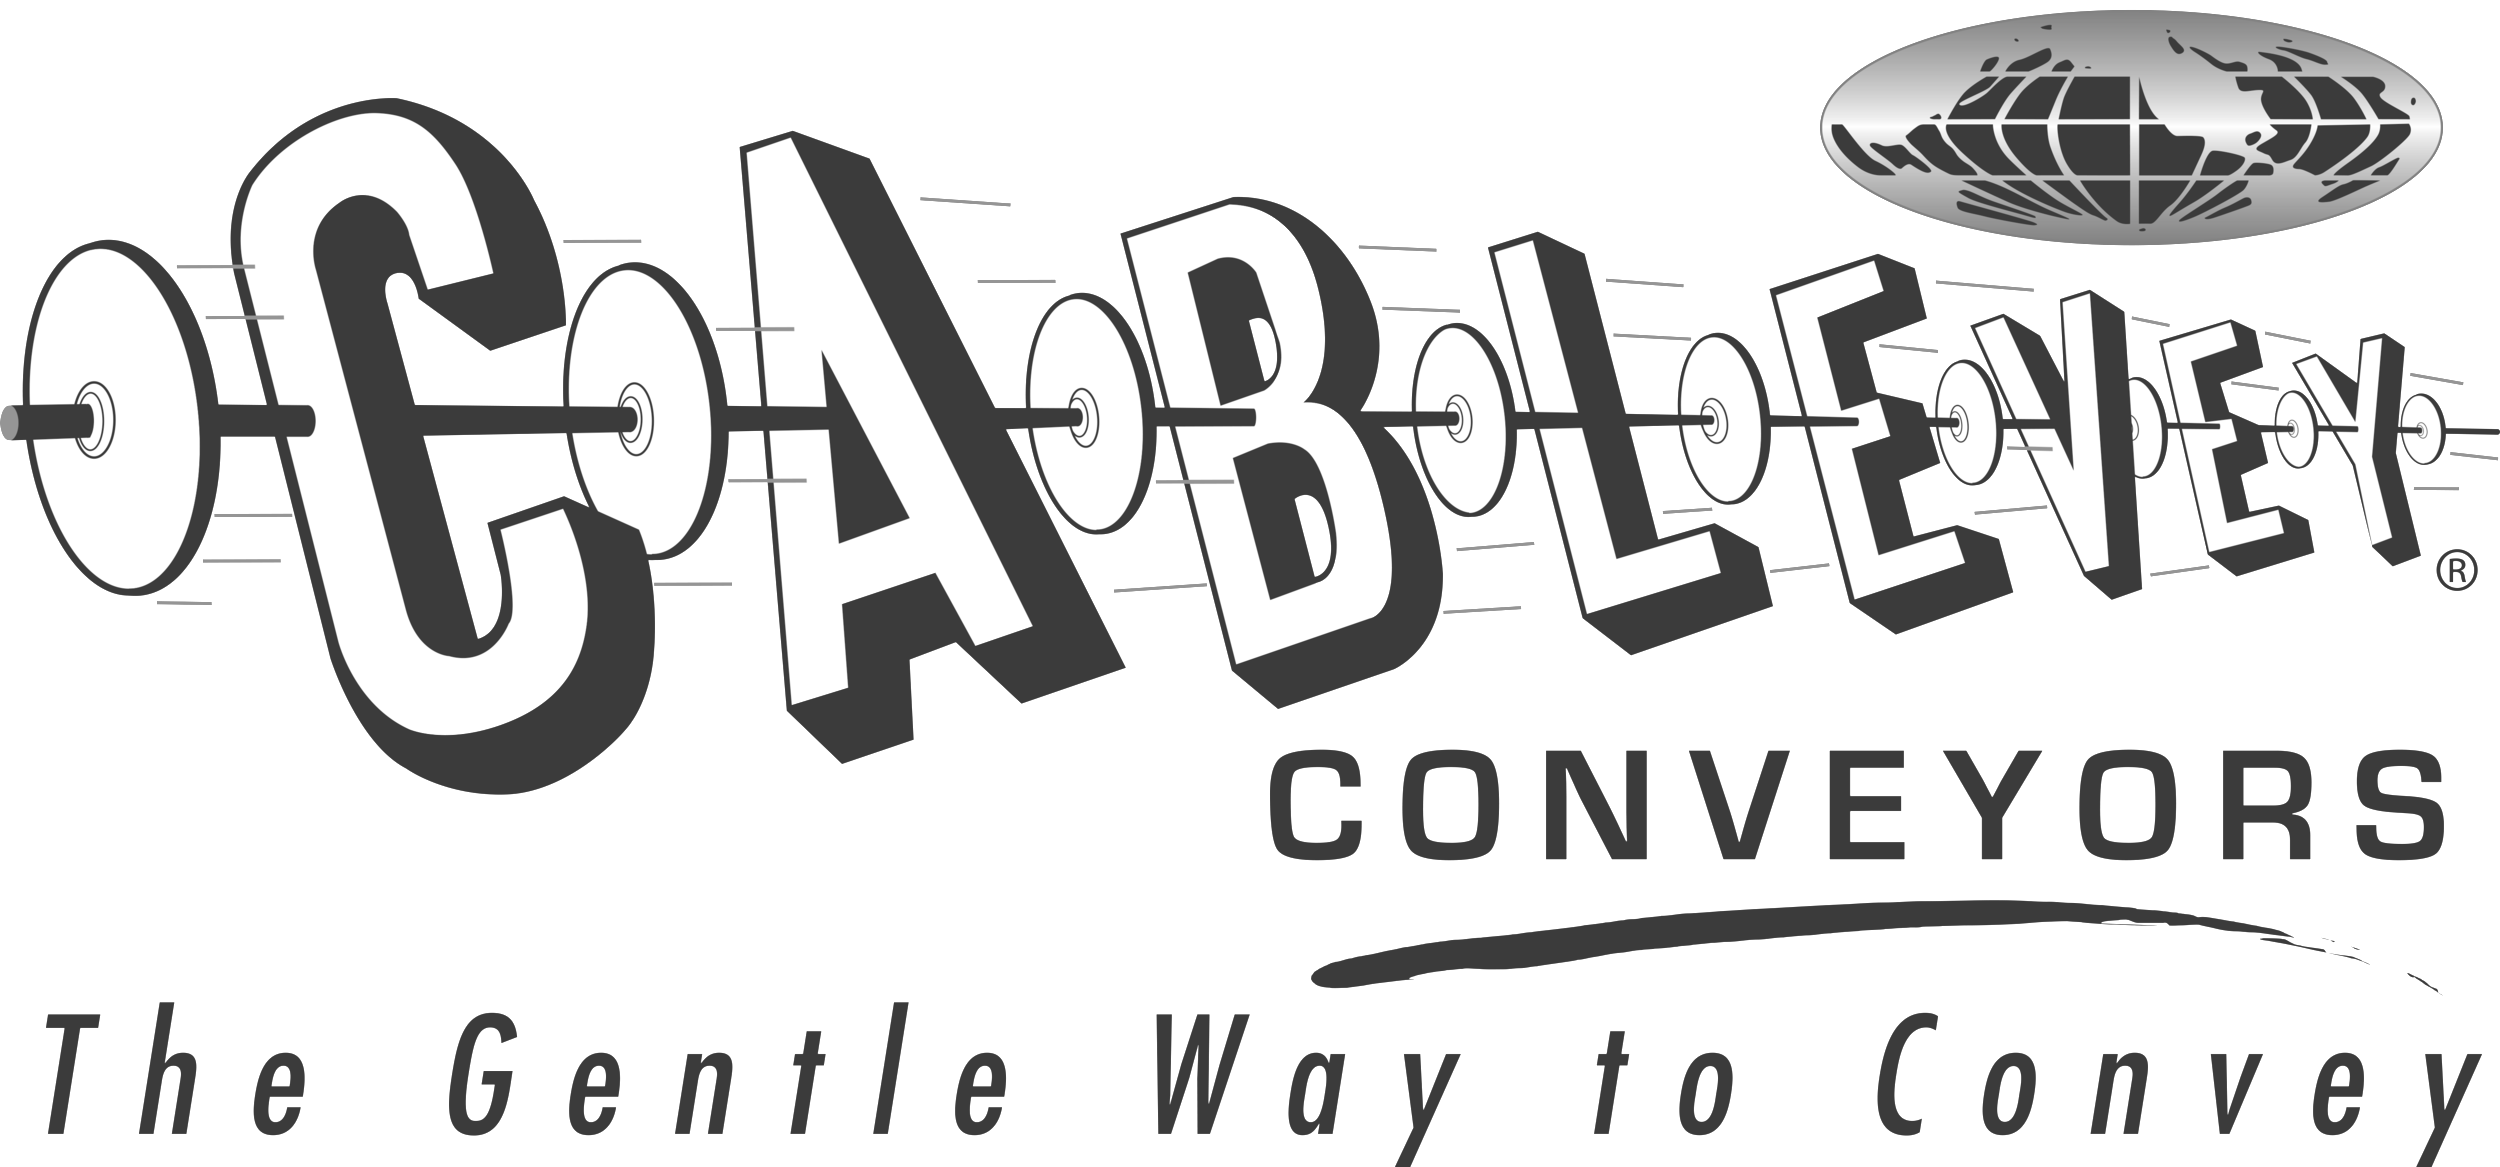 Cabelevey Conveyors_grey.png